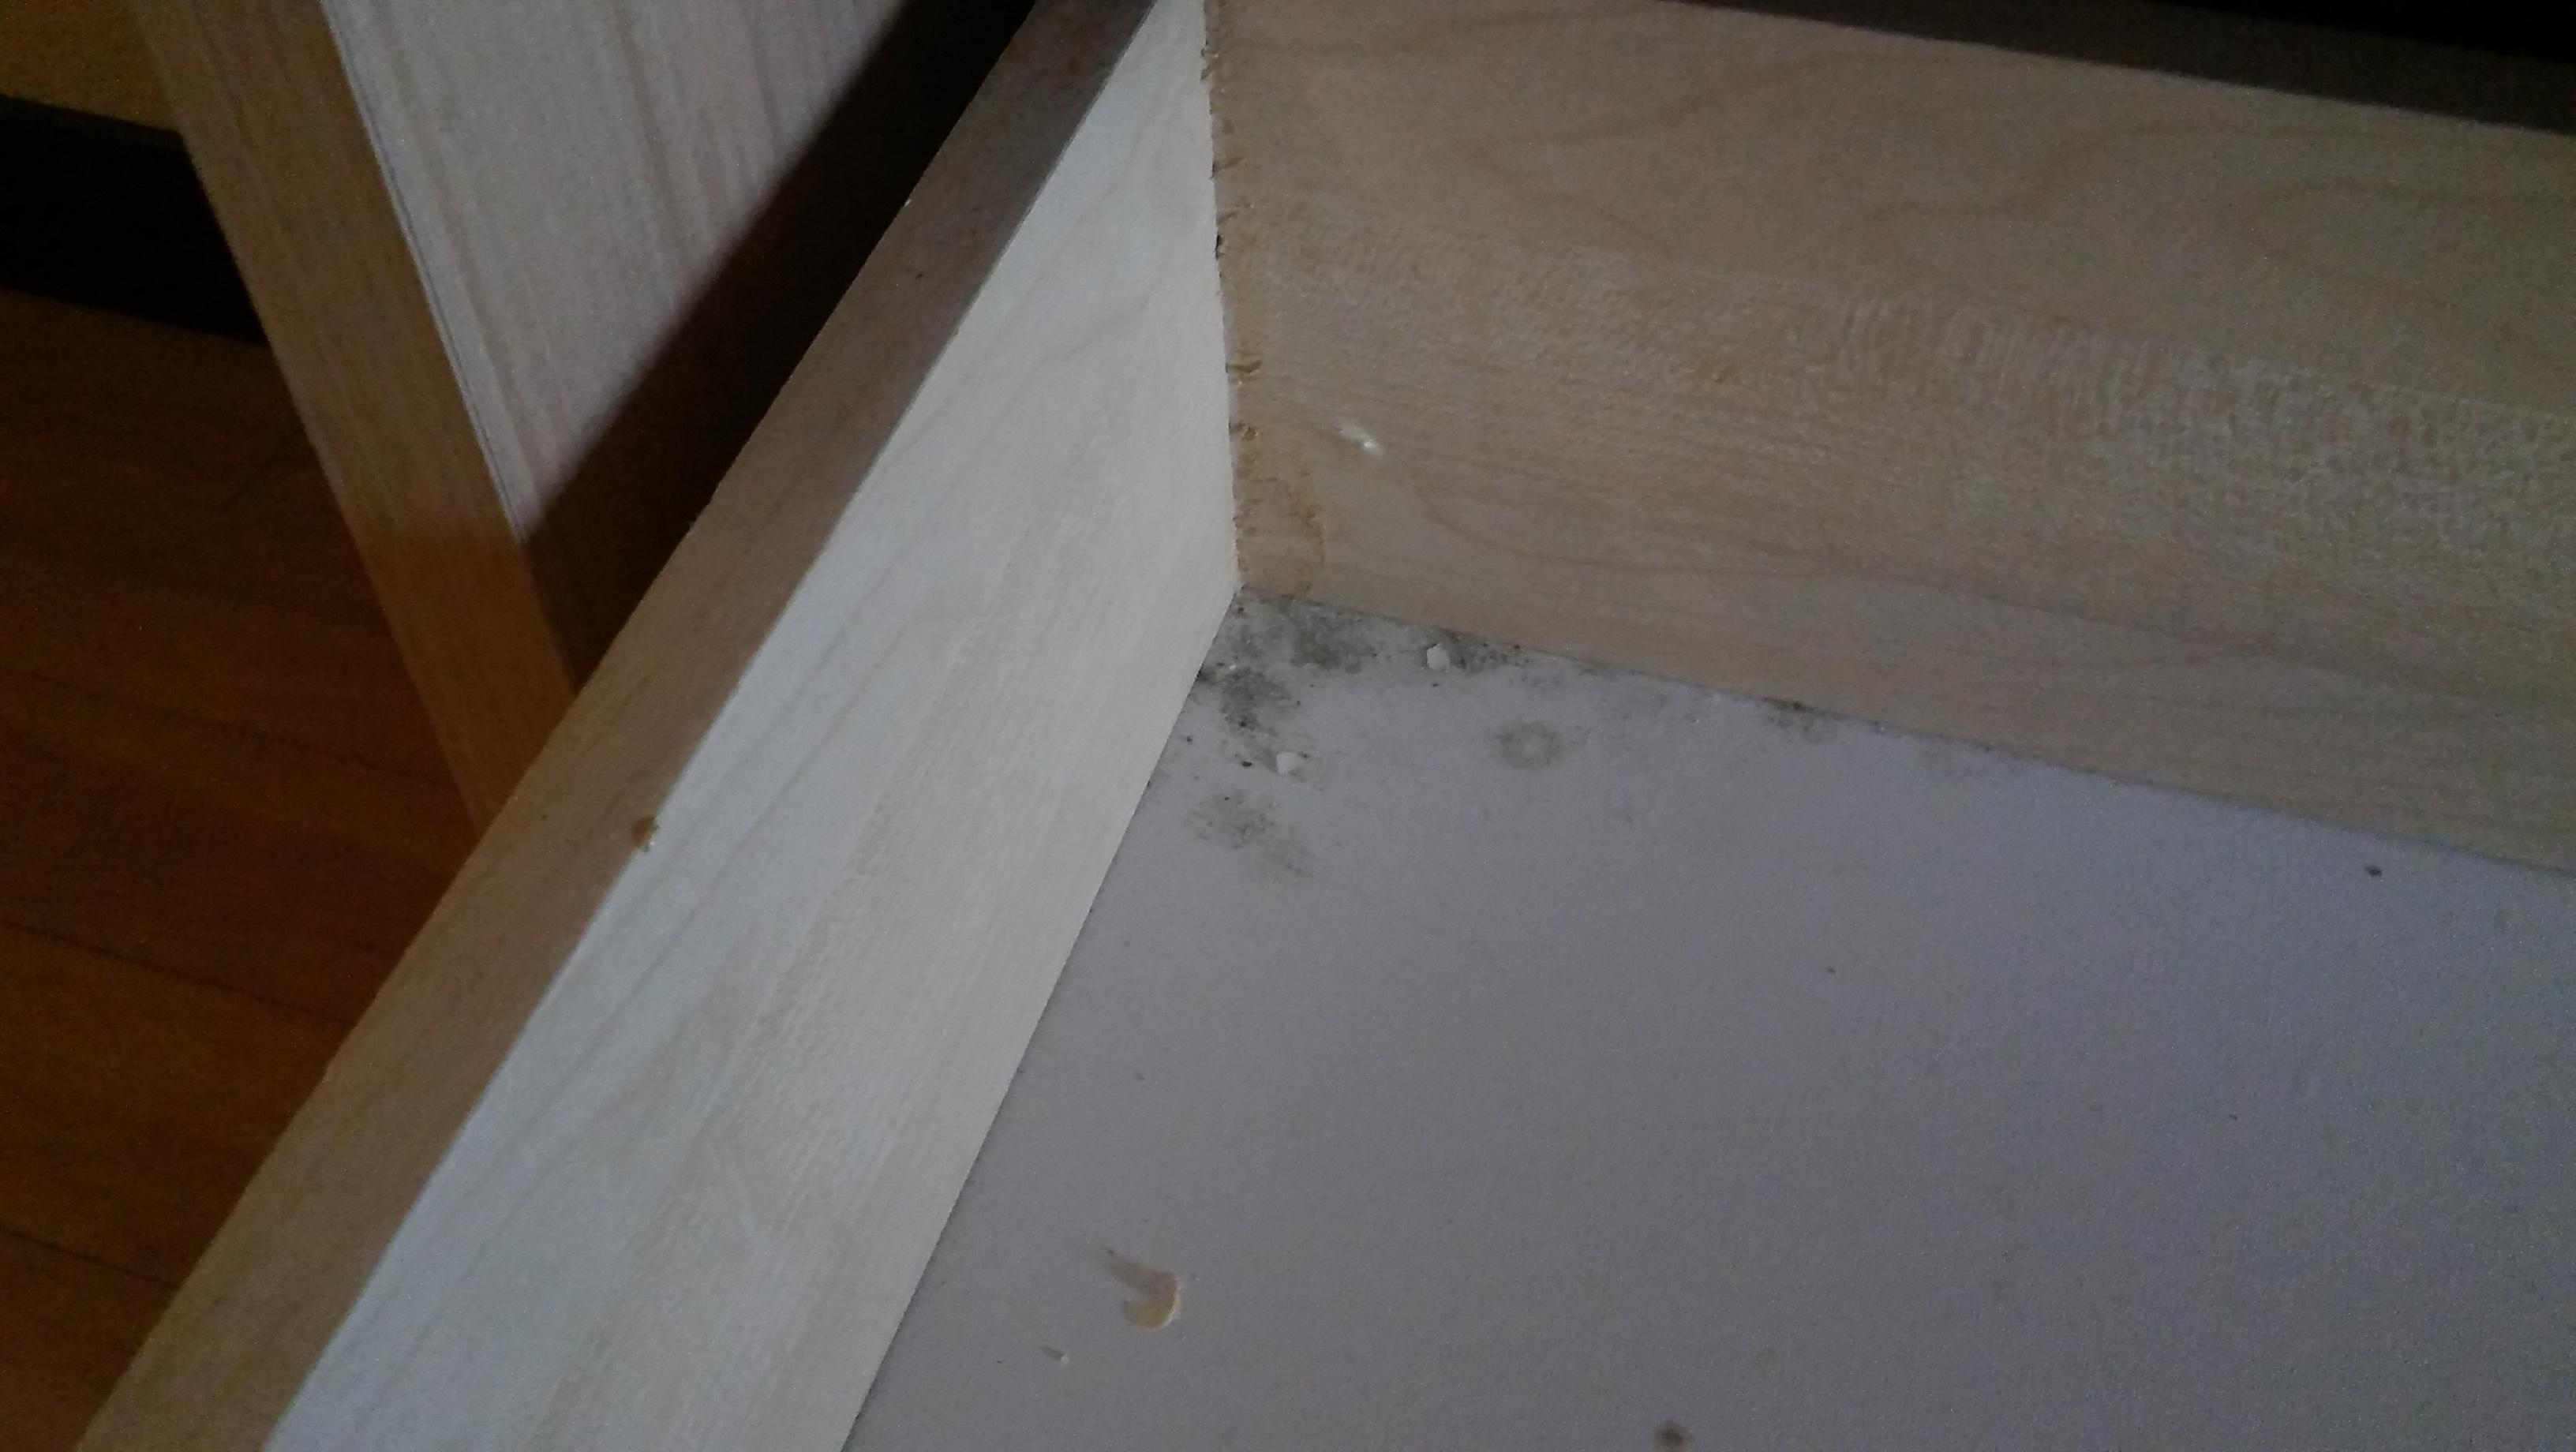 Mold in the dresser drawer